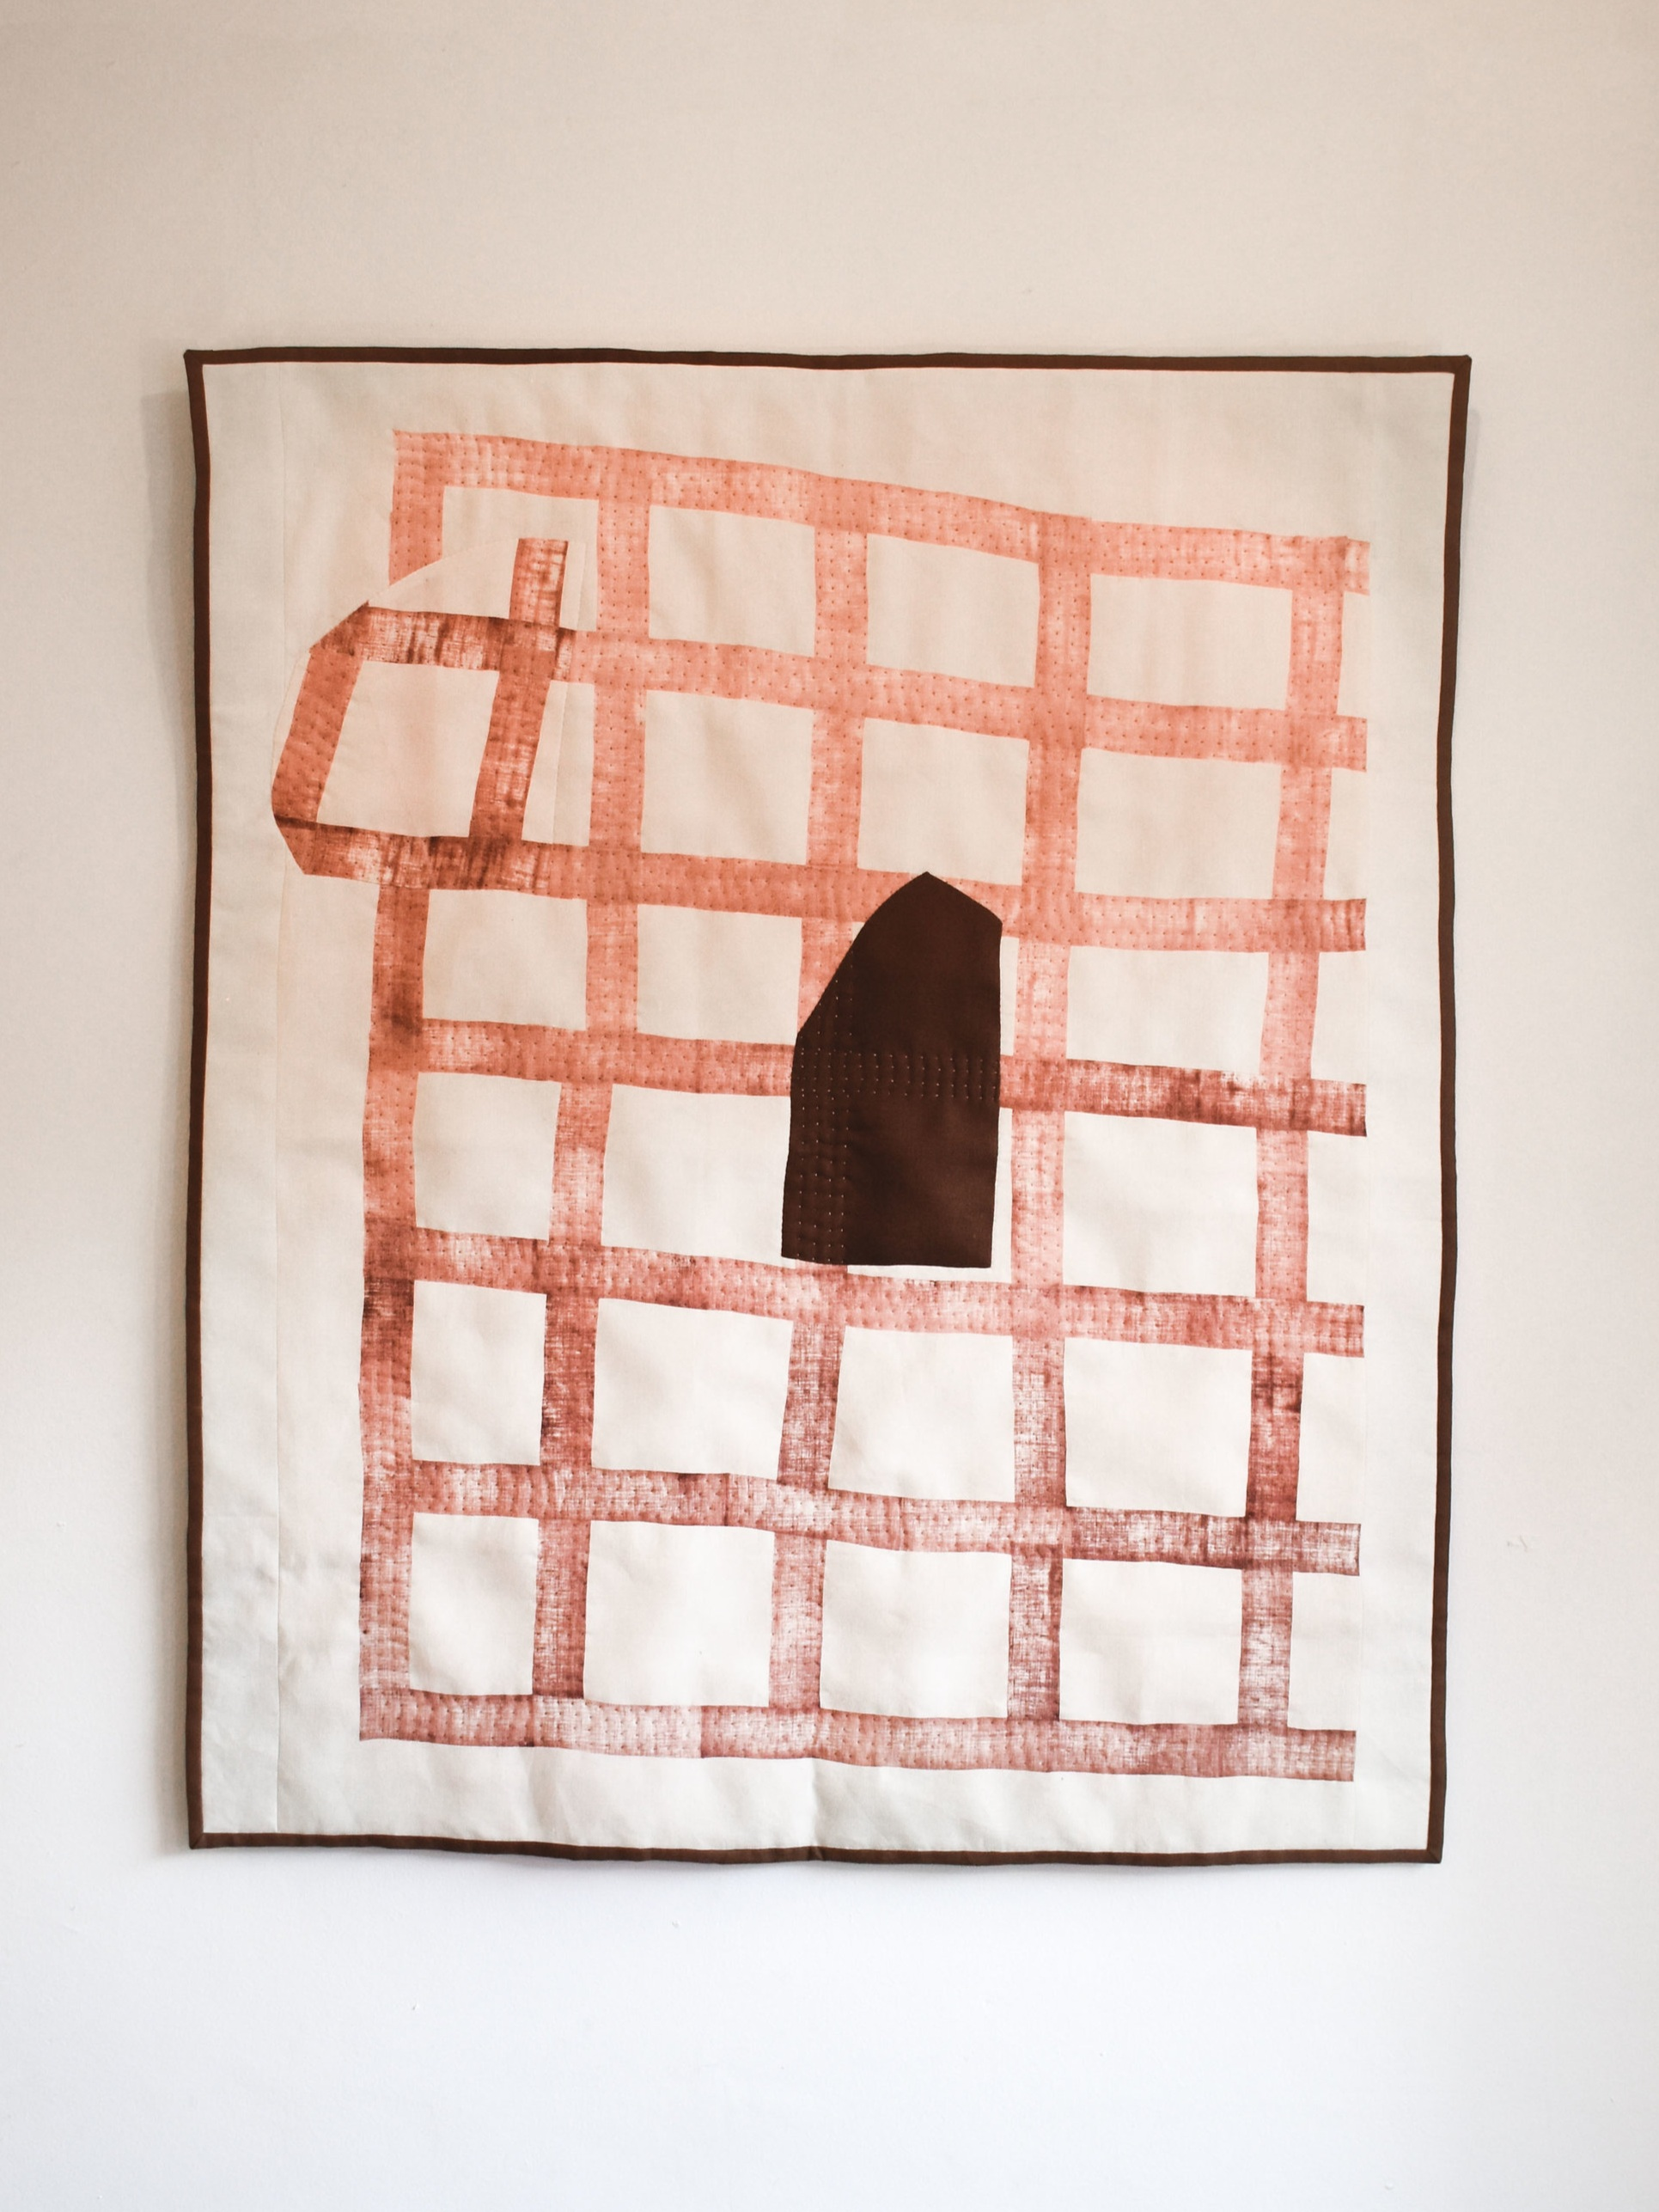 Net II - 120 x 100 cm  block printed & hand stitched linen with linen backing